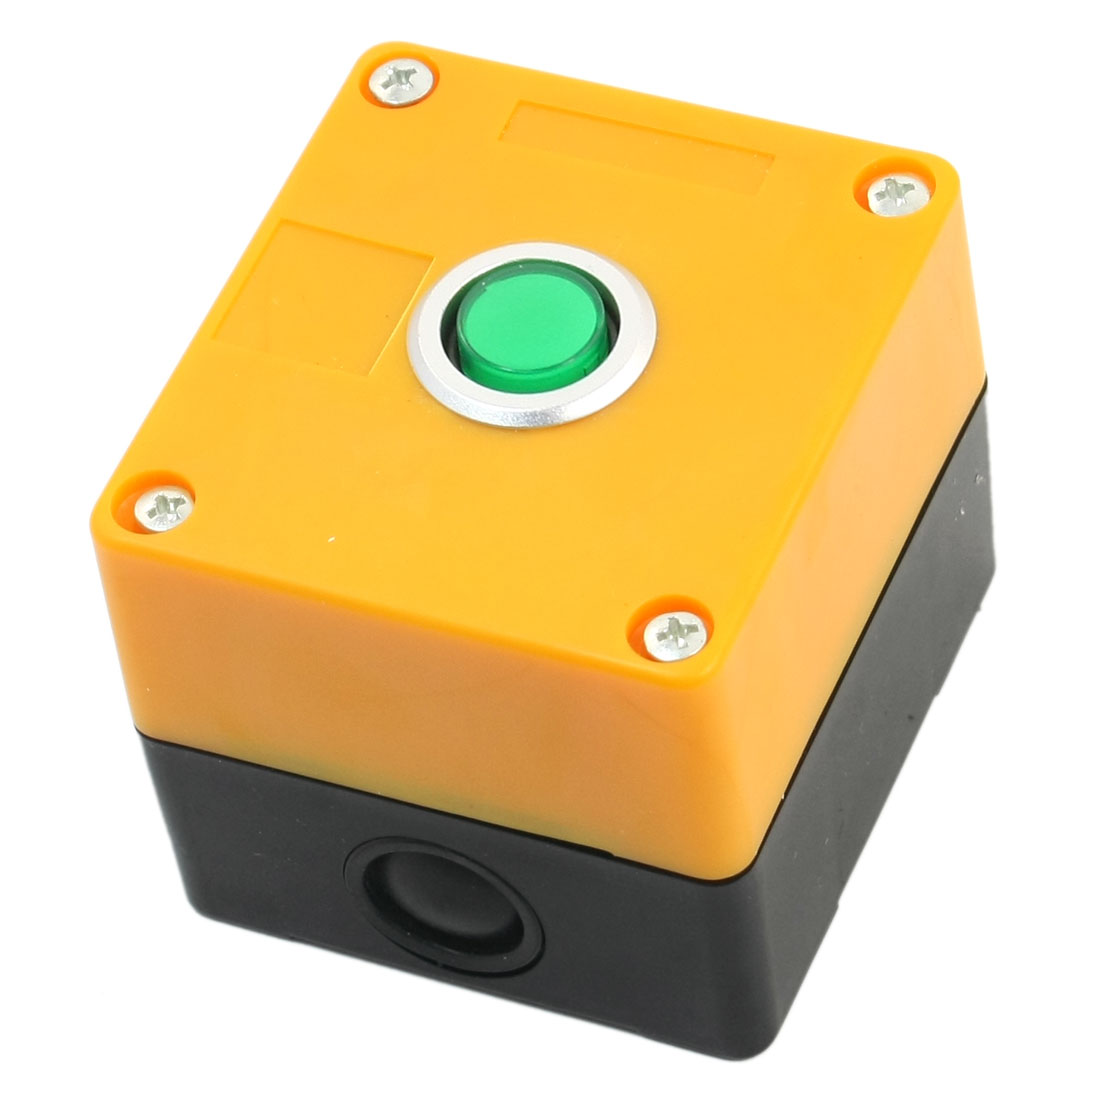 AC220V 5A SPDT 3-Pin 1NO 1NC Momentary Action Green Button Rectangle Yellow Plastic Pushbutton Control Station Switch Control Box